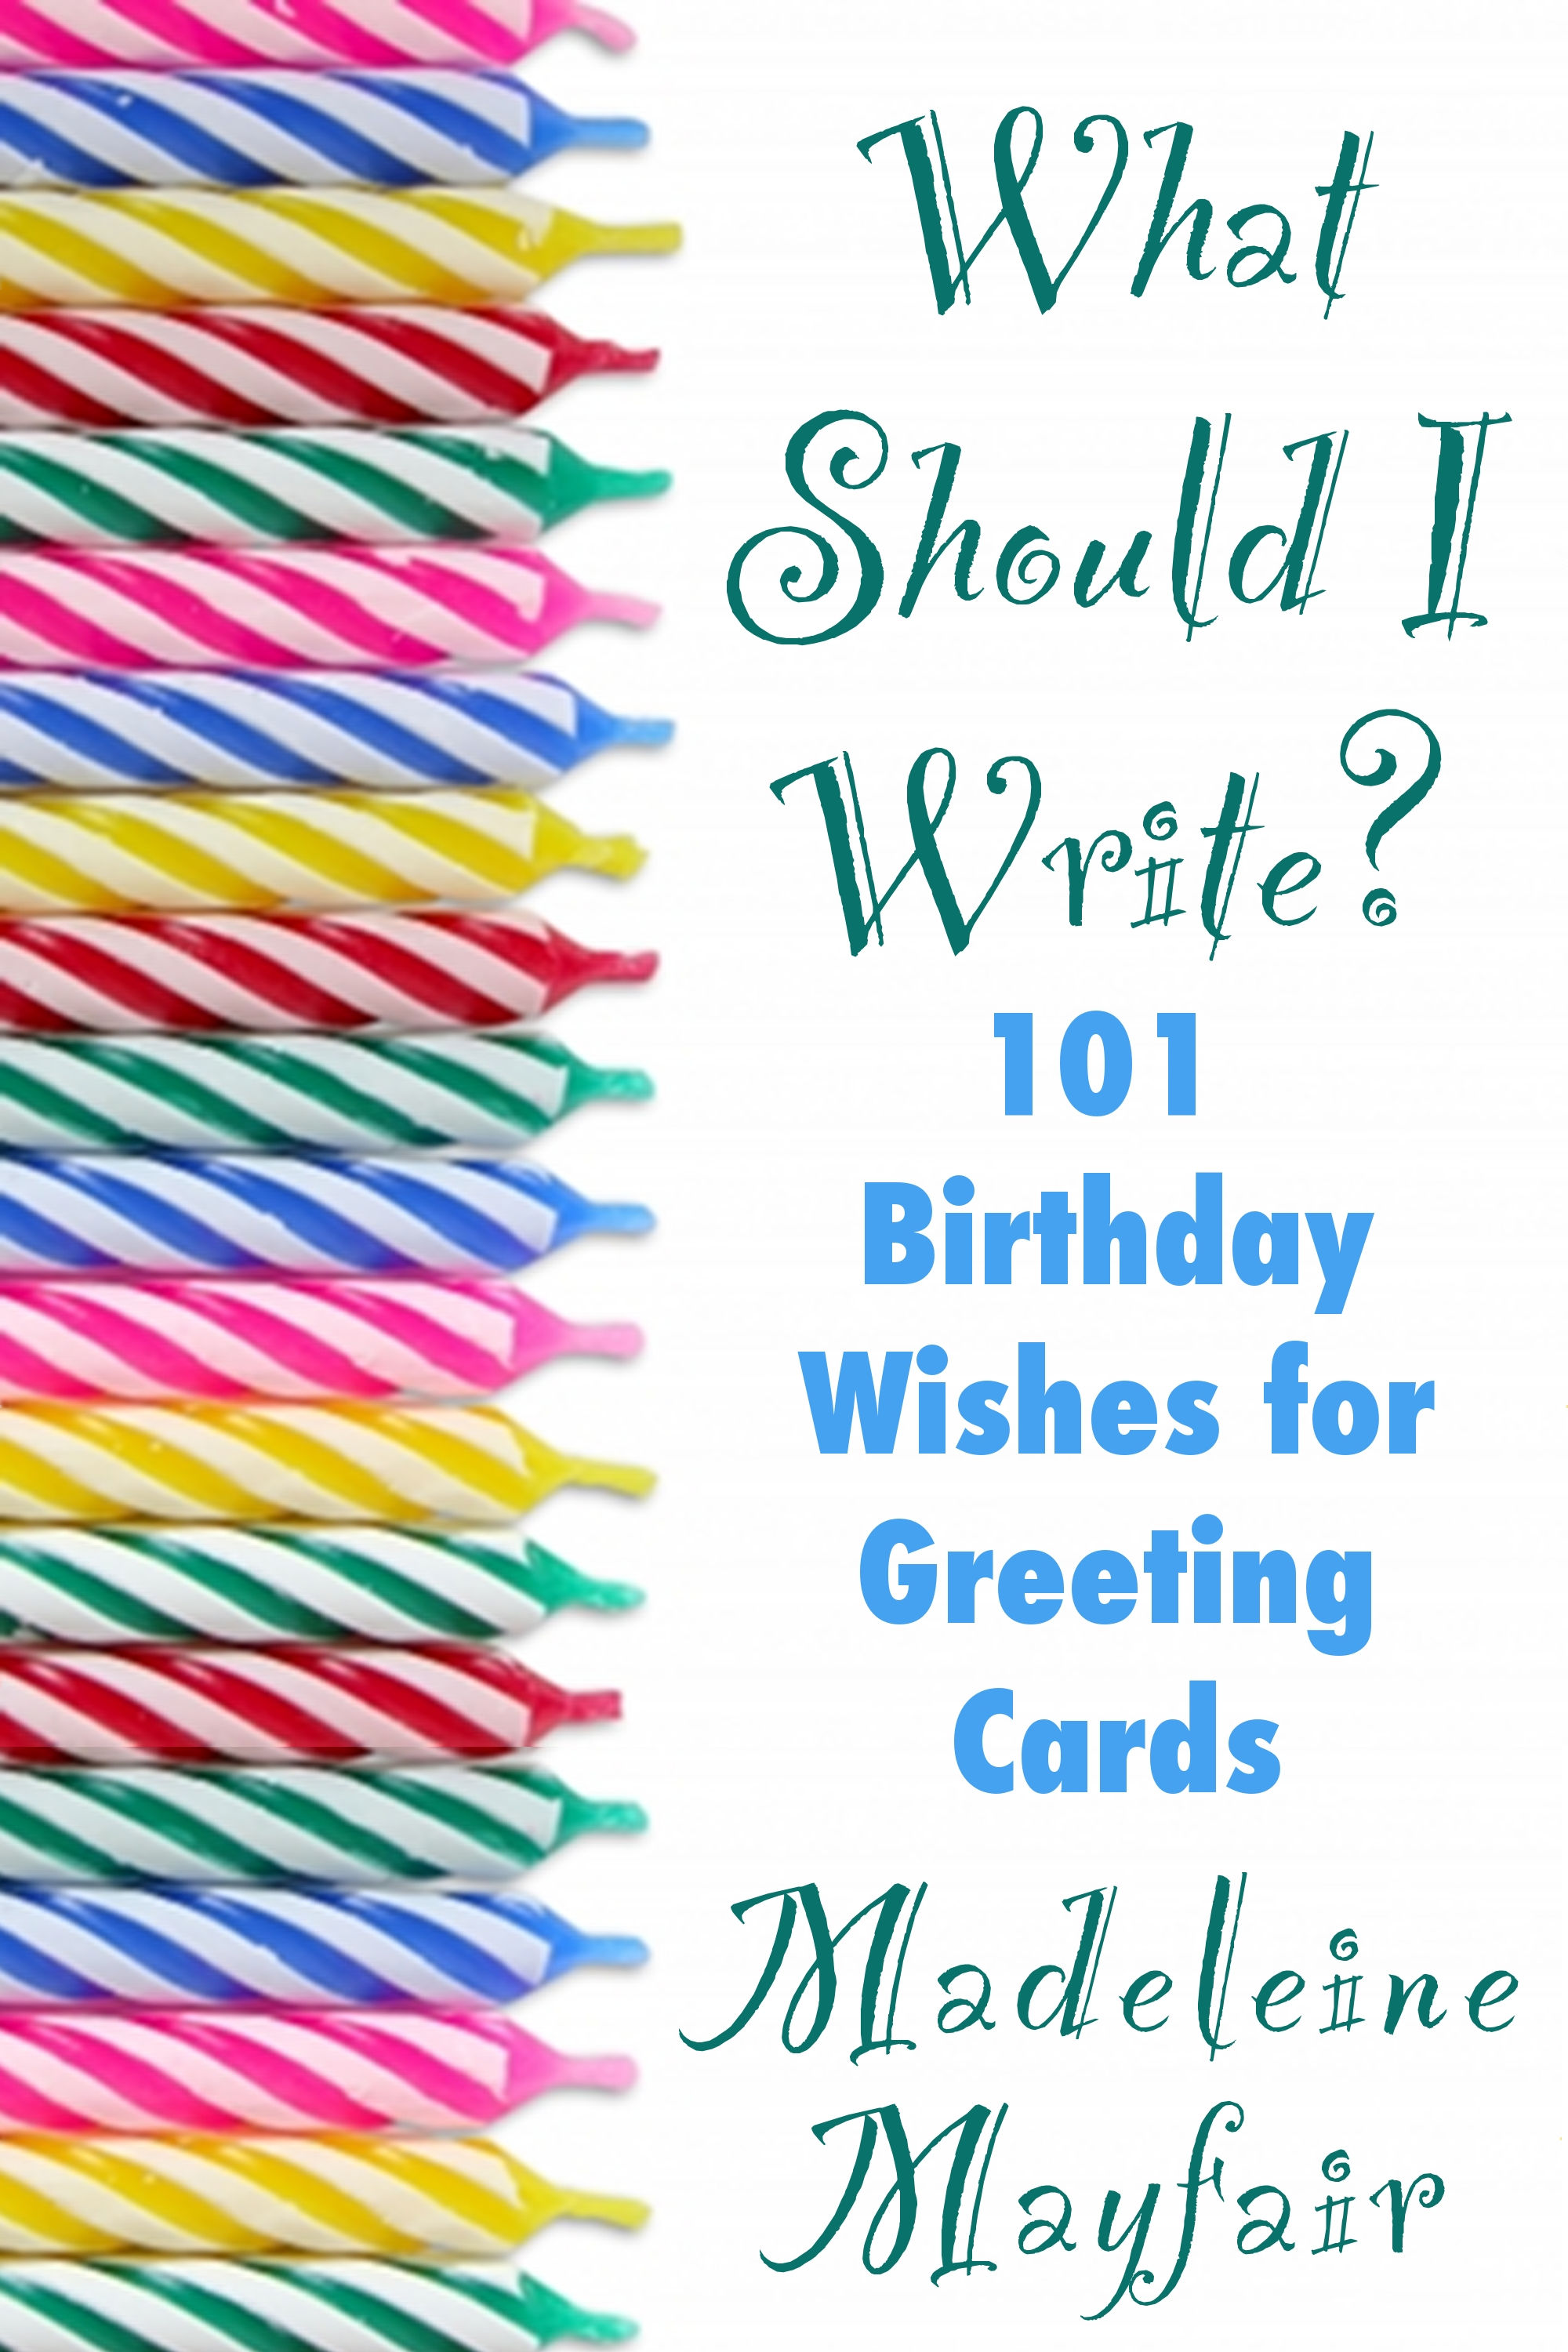 101 Birthday Wishes For Greeting Cards By Madeleine Mayfair